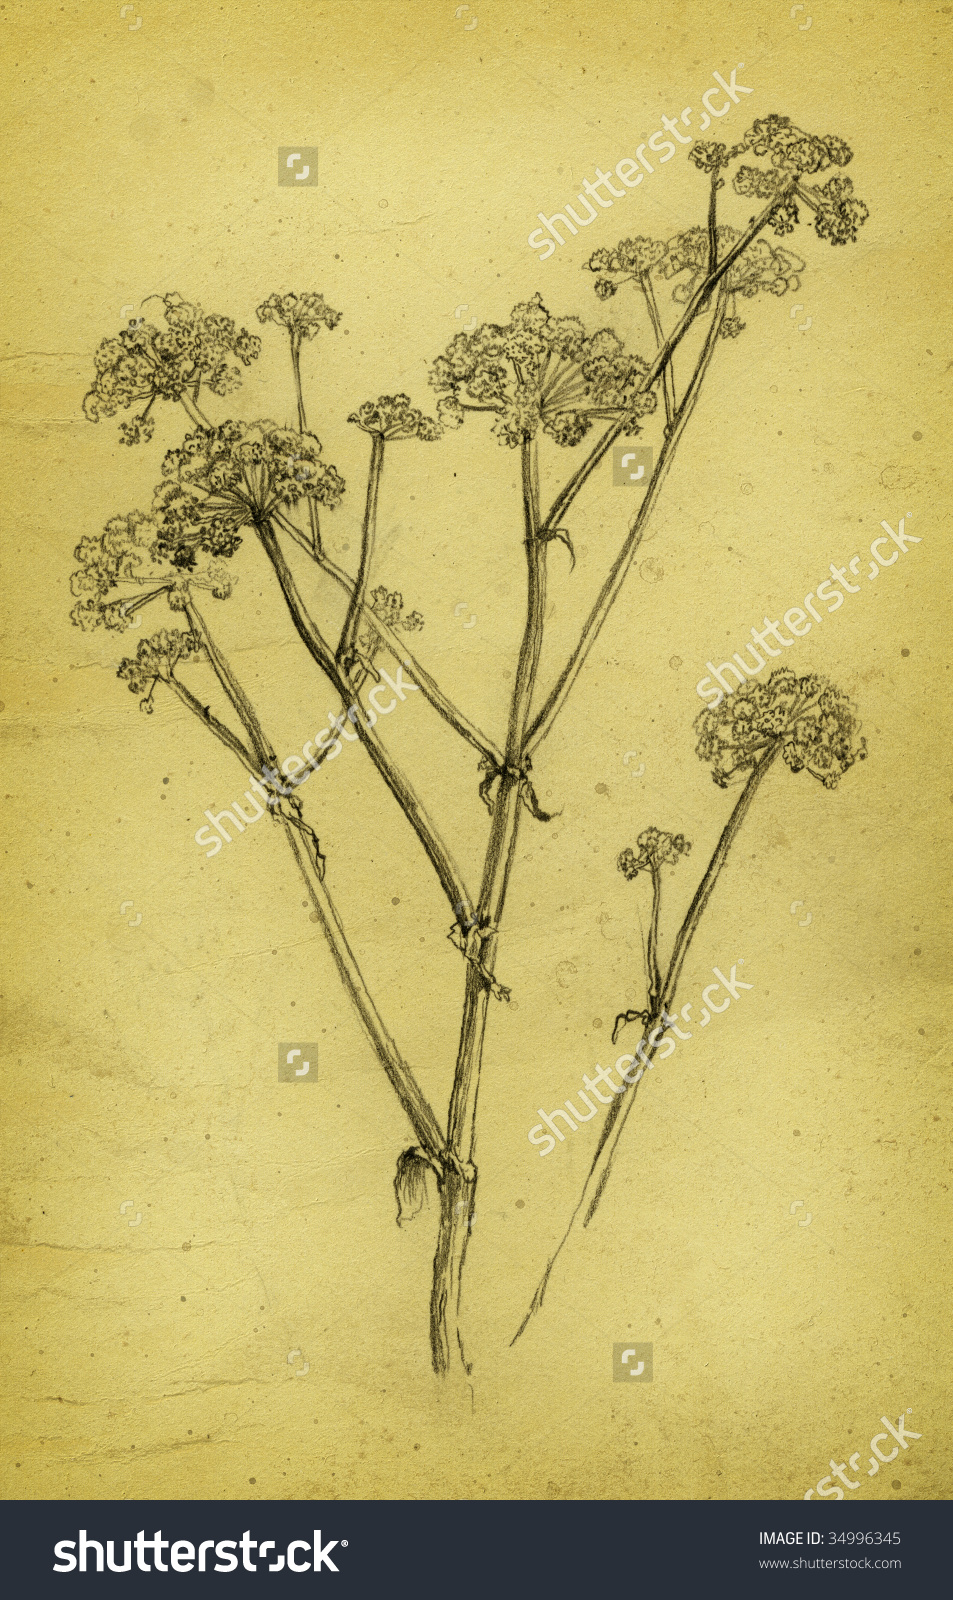 The Plant. Wild Angelica. Made By Pencil On Paper. Stock Photo.